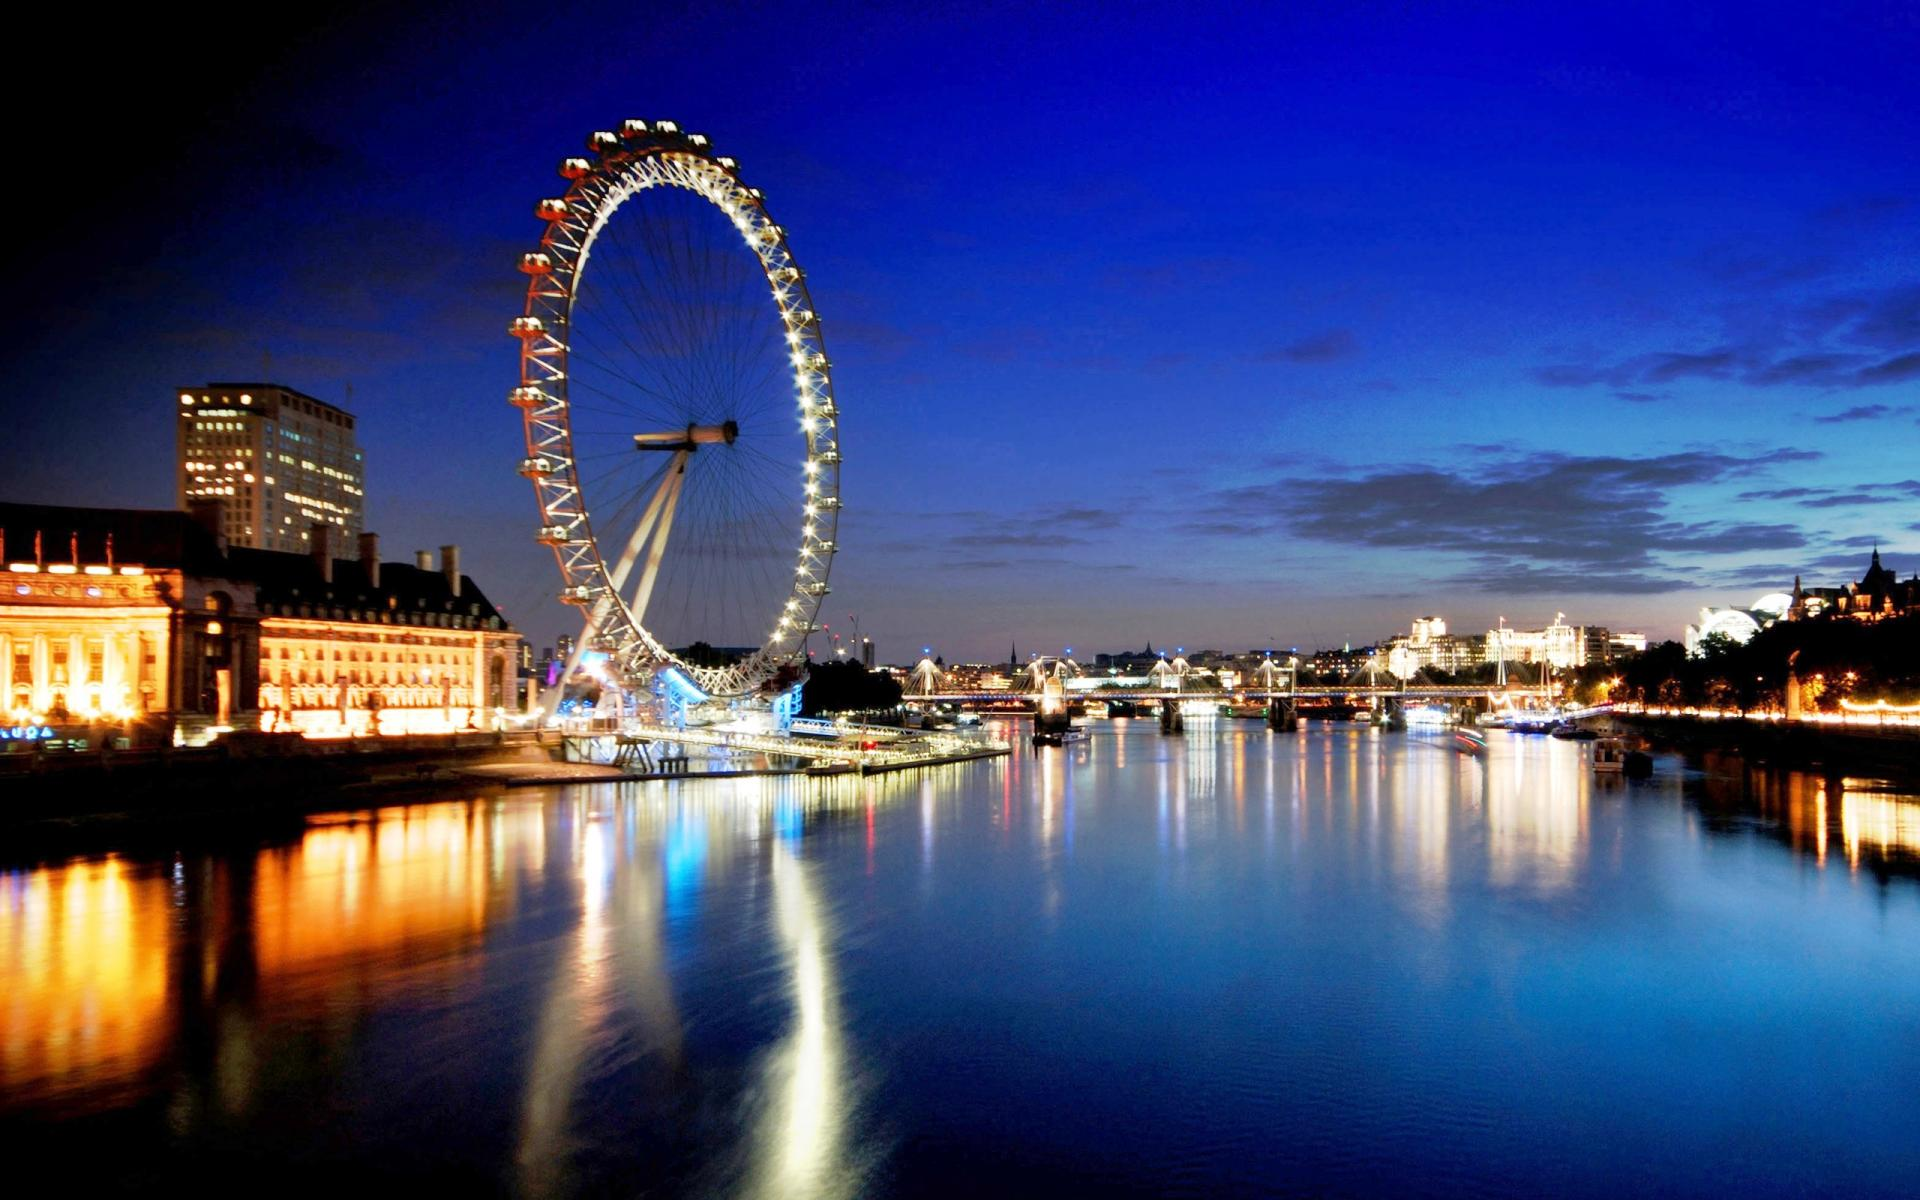 London Eye HD Wallpapers  Travel HD Wallpapers 1920x1200